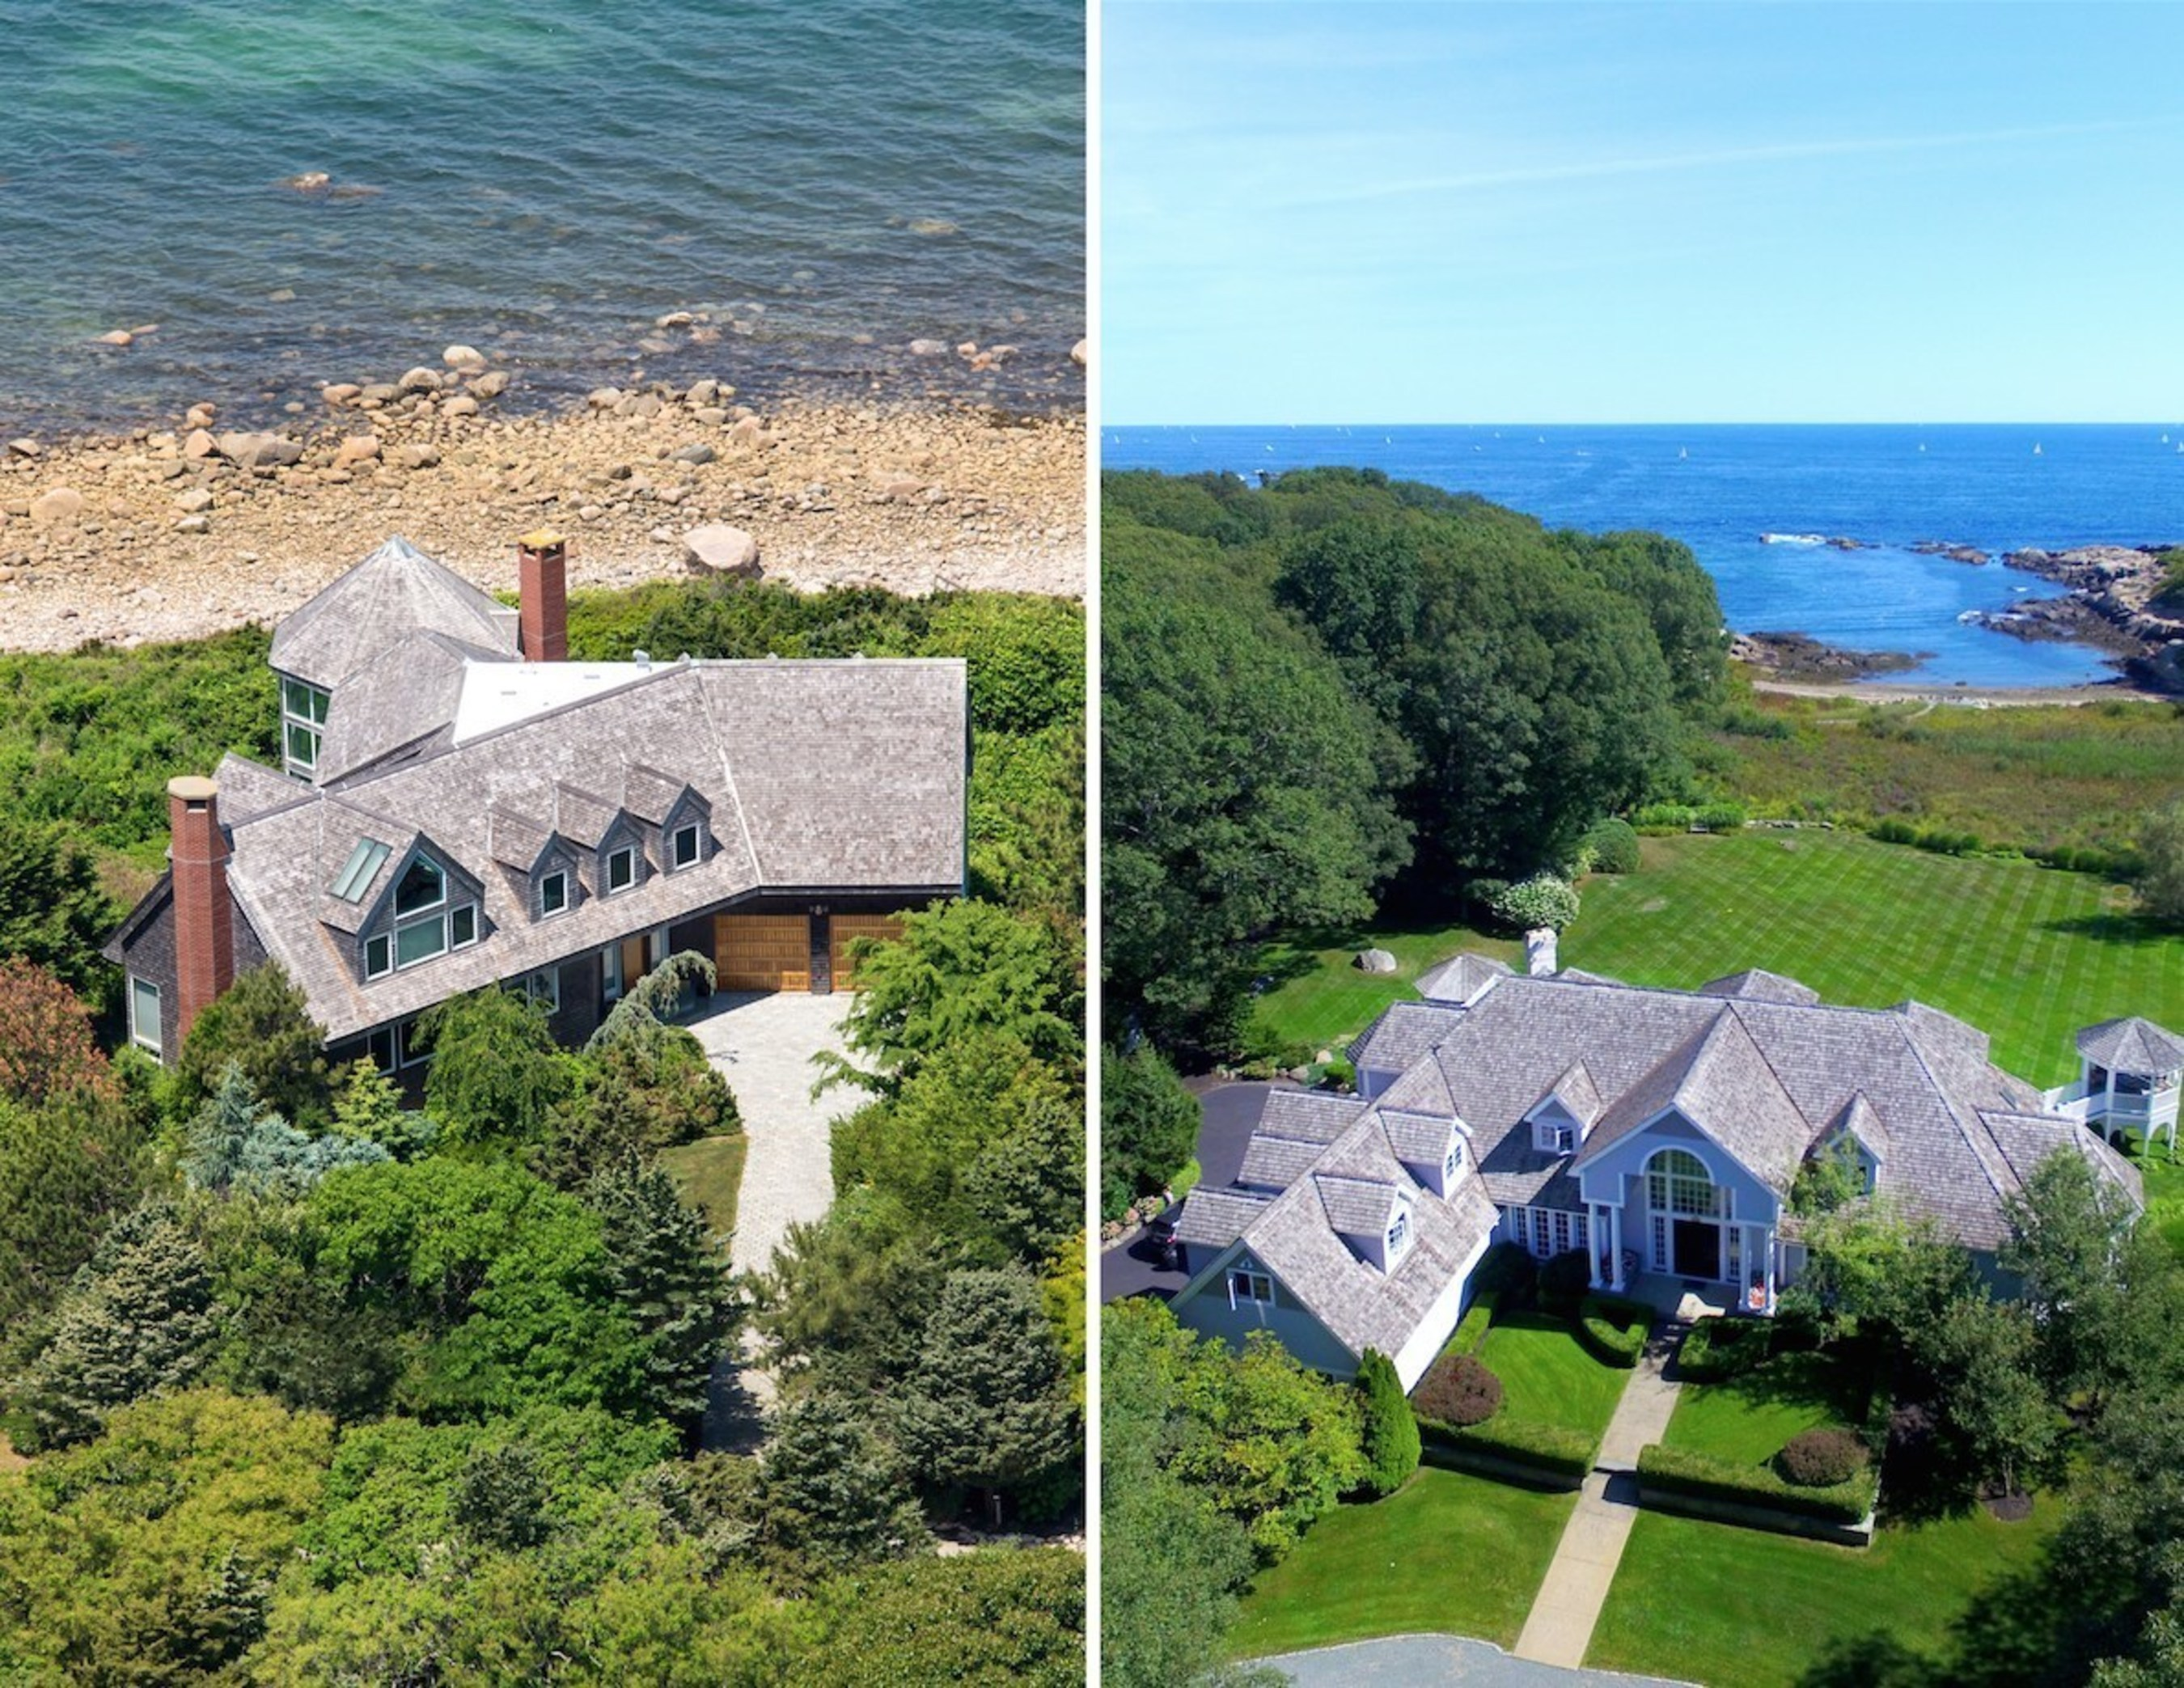 Concierge Auctions Achieves Back-To-Back Success In New England With The Auction Of Two Luxury Seaside Estates